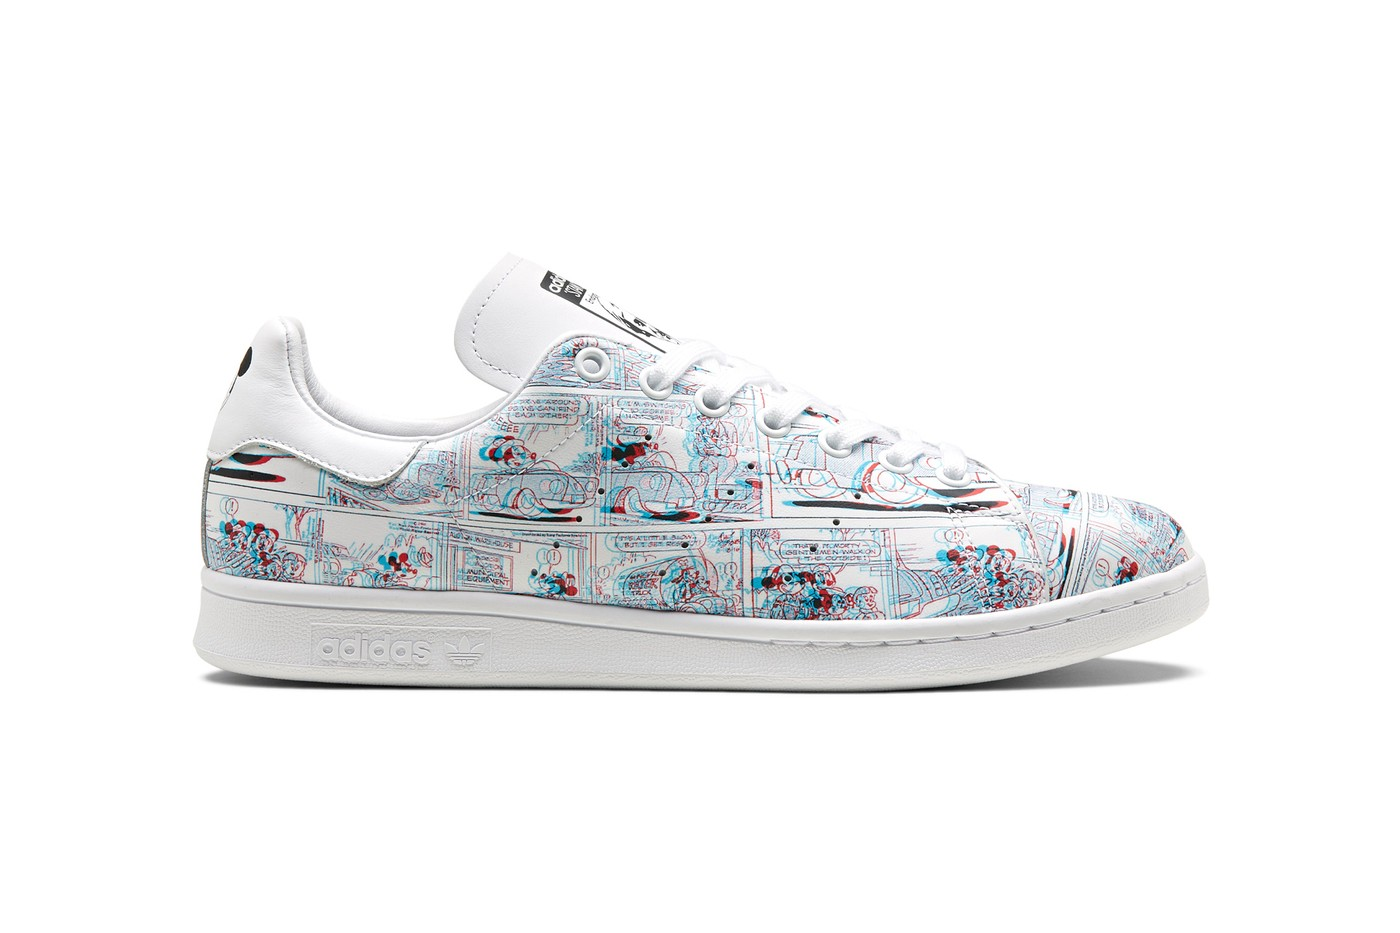 adidas originals mickey mouse pack(3)